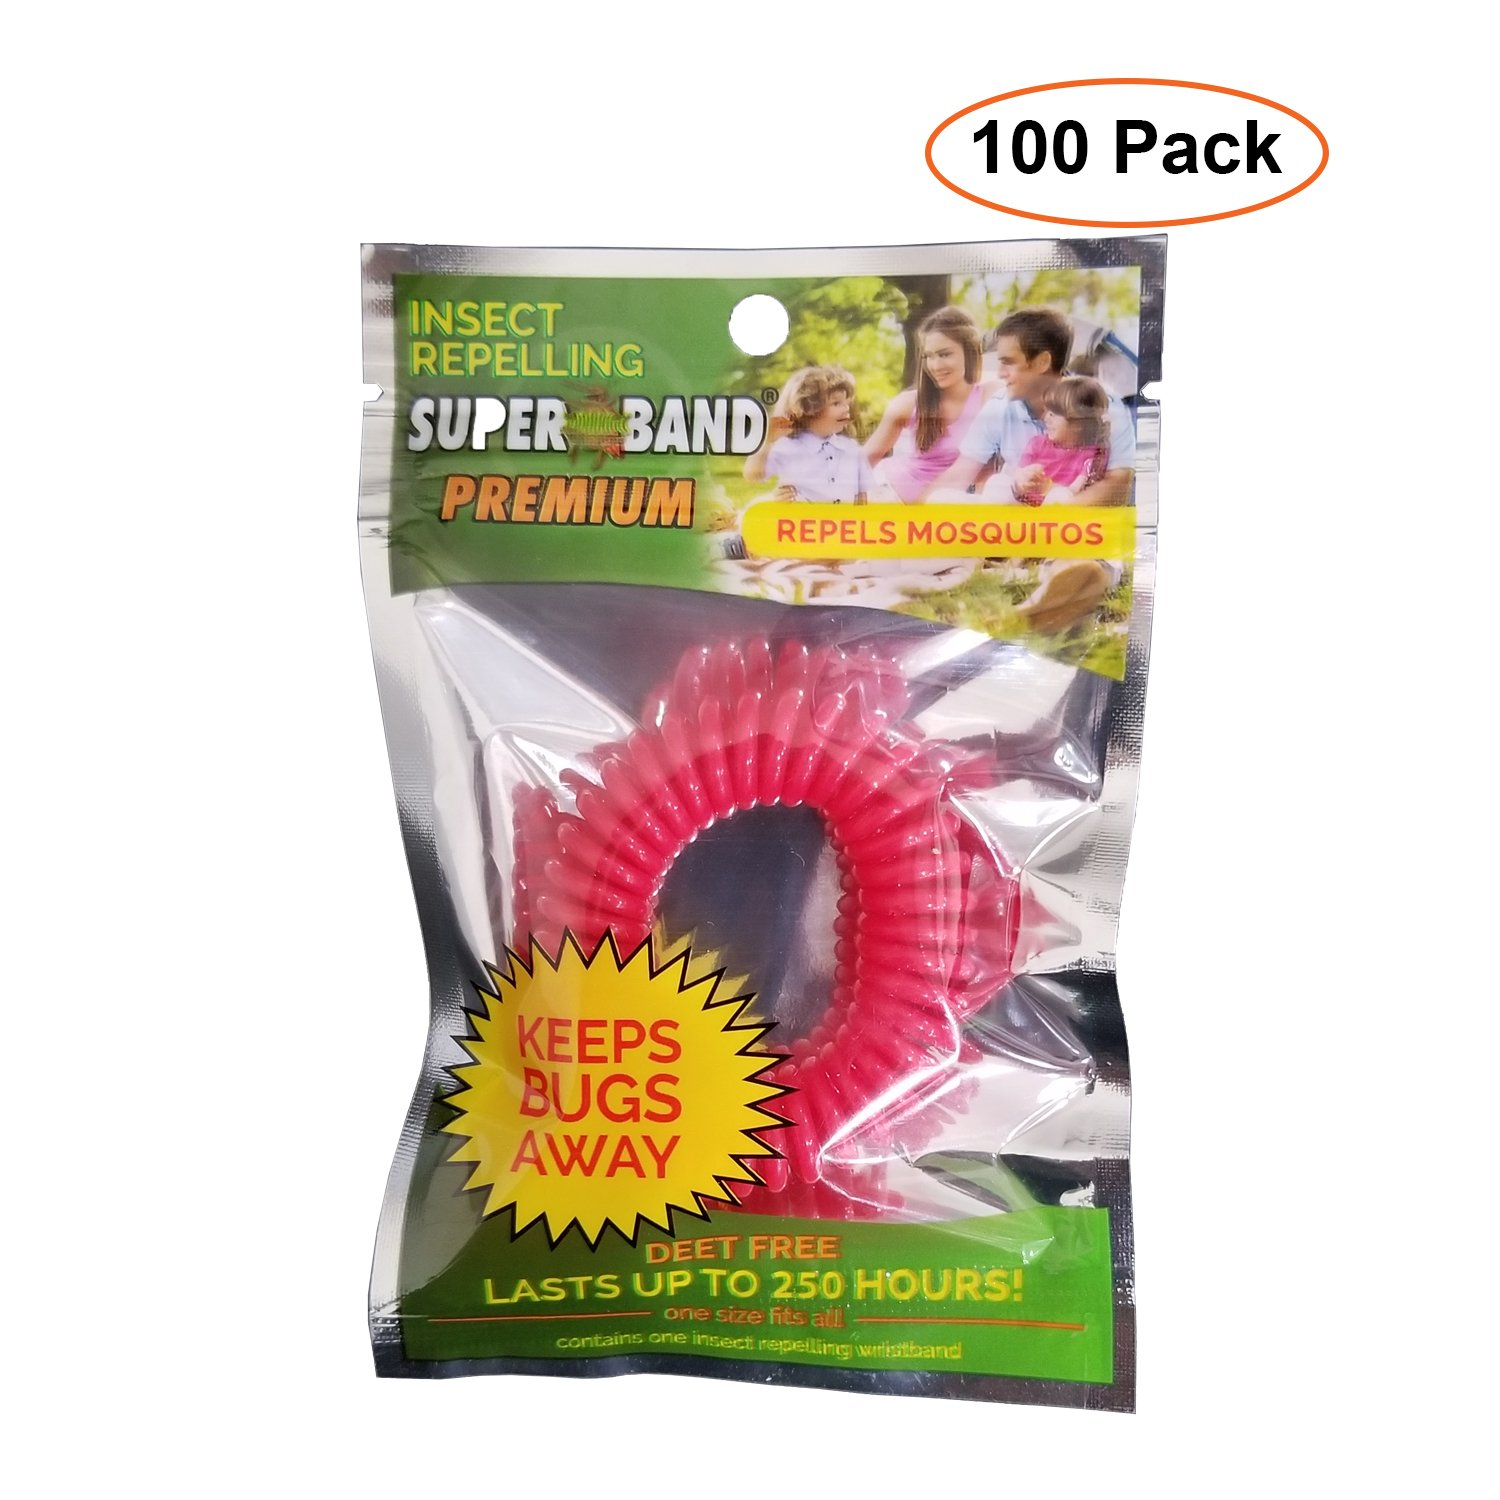 100 Pack - Evergreen Superband Non-Toxic Mosquito Repelling Wristband - Red by Evergreen Research